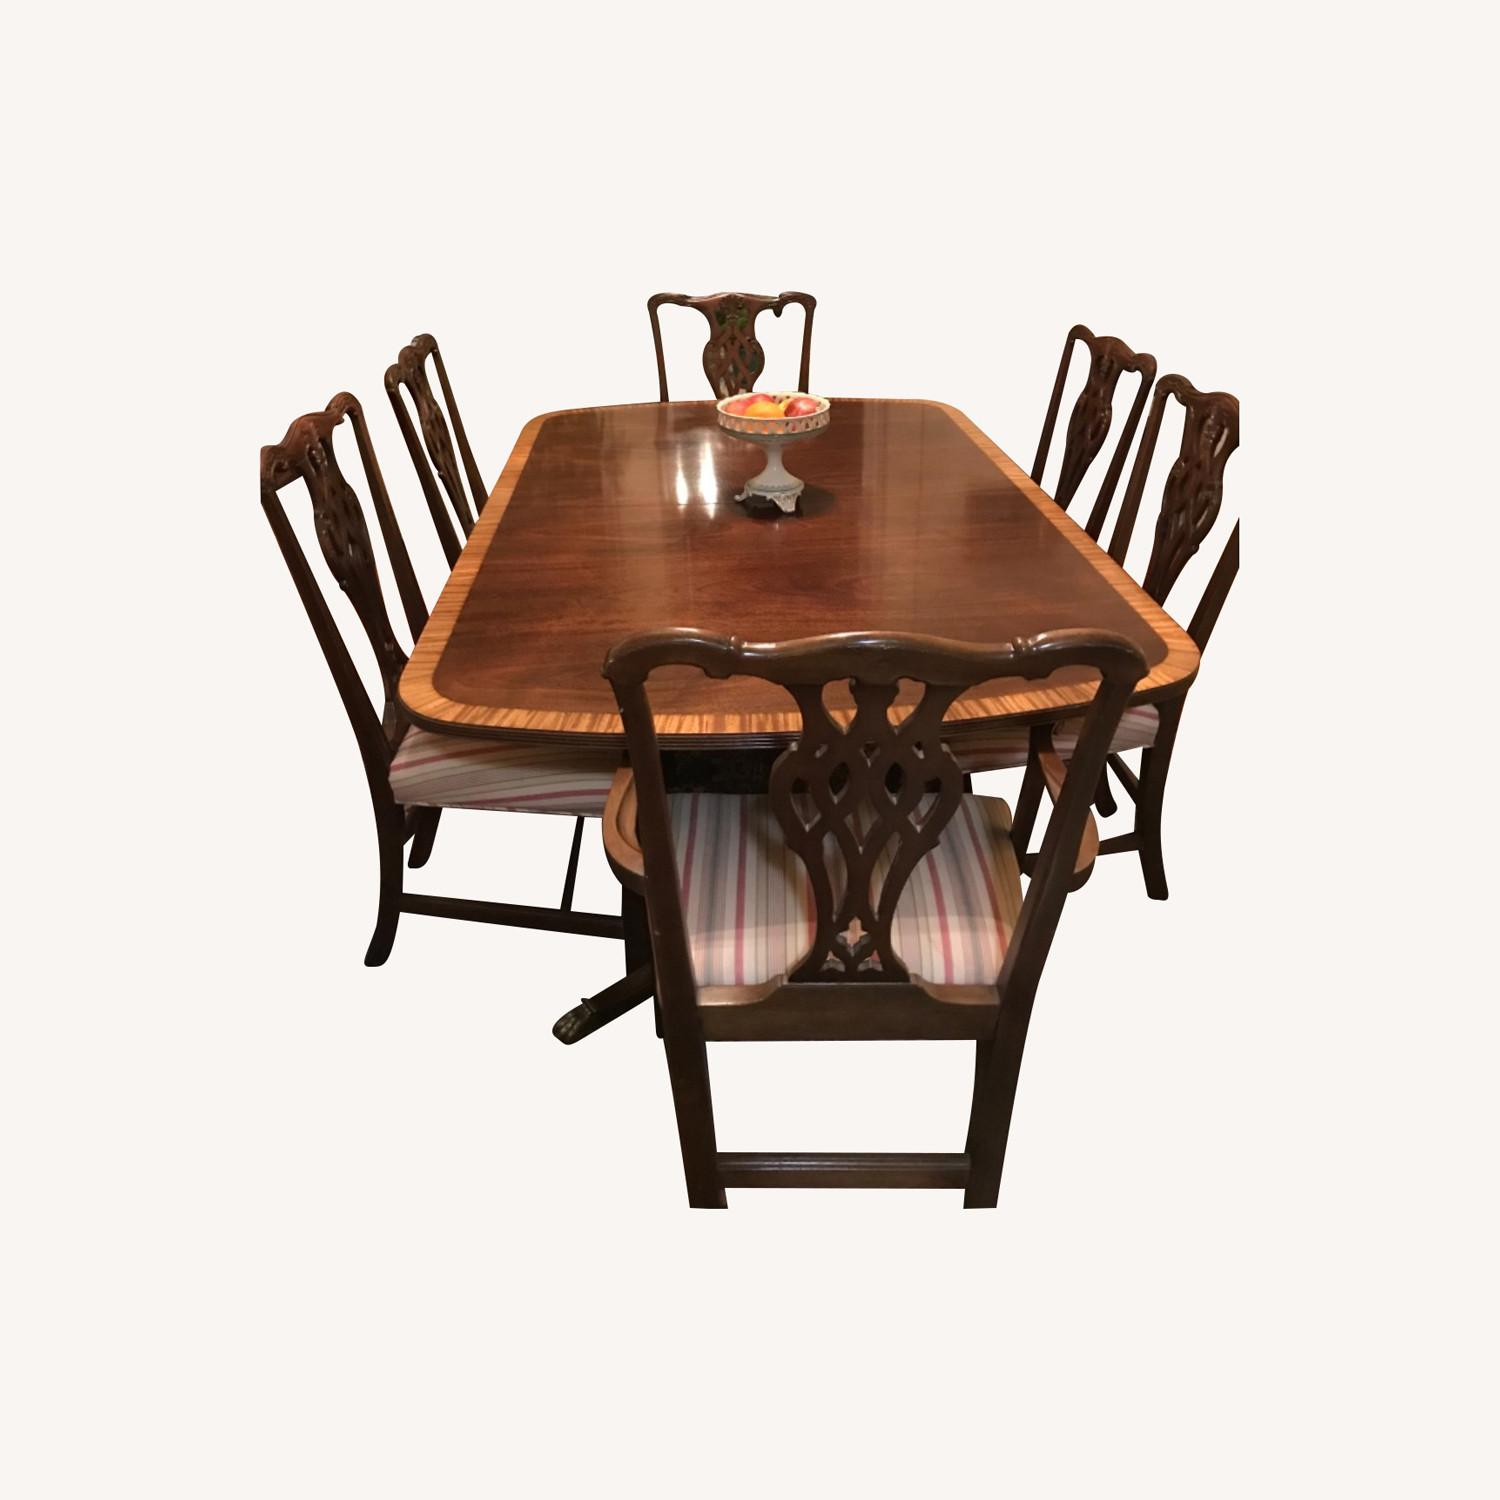 Mahogany Dining Set with 2 Leaves and 6 Chairs - image-0